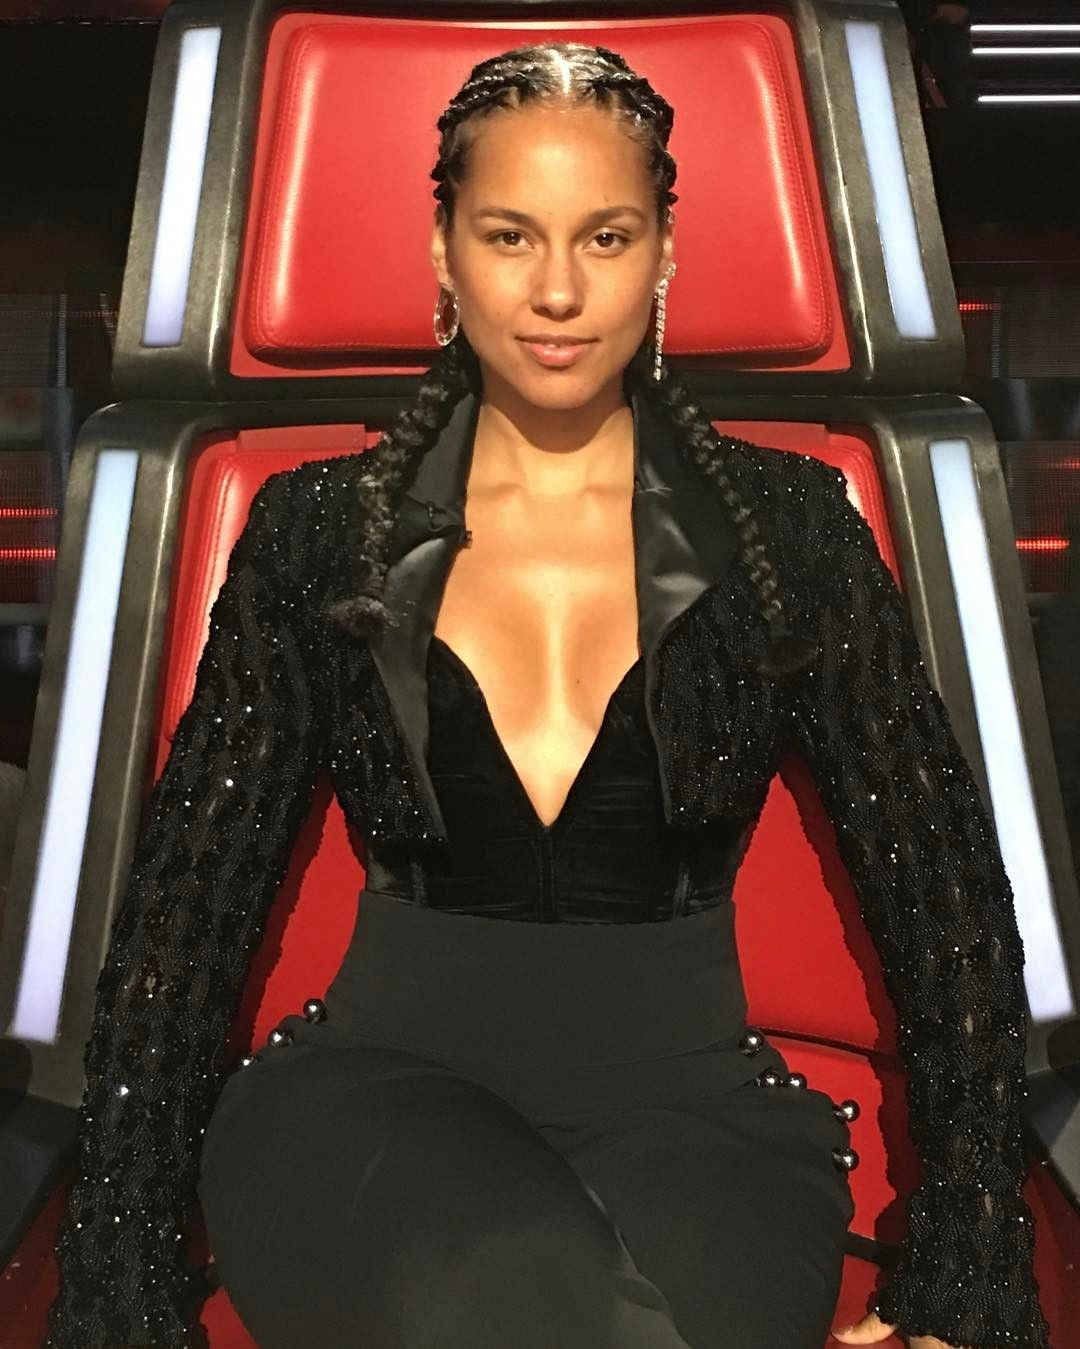 Instagram Alicia Keys nude (33 foto and video), Sexy, Paparazzi, Boobs, braless 2017